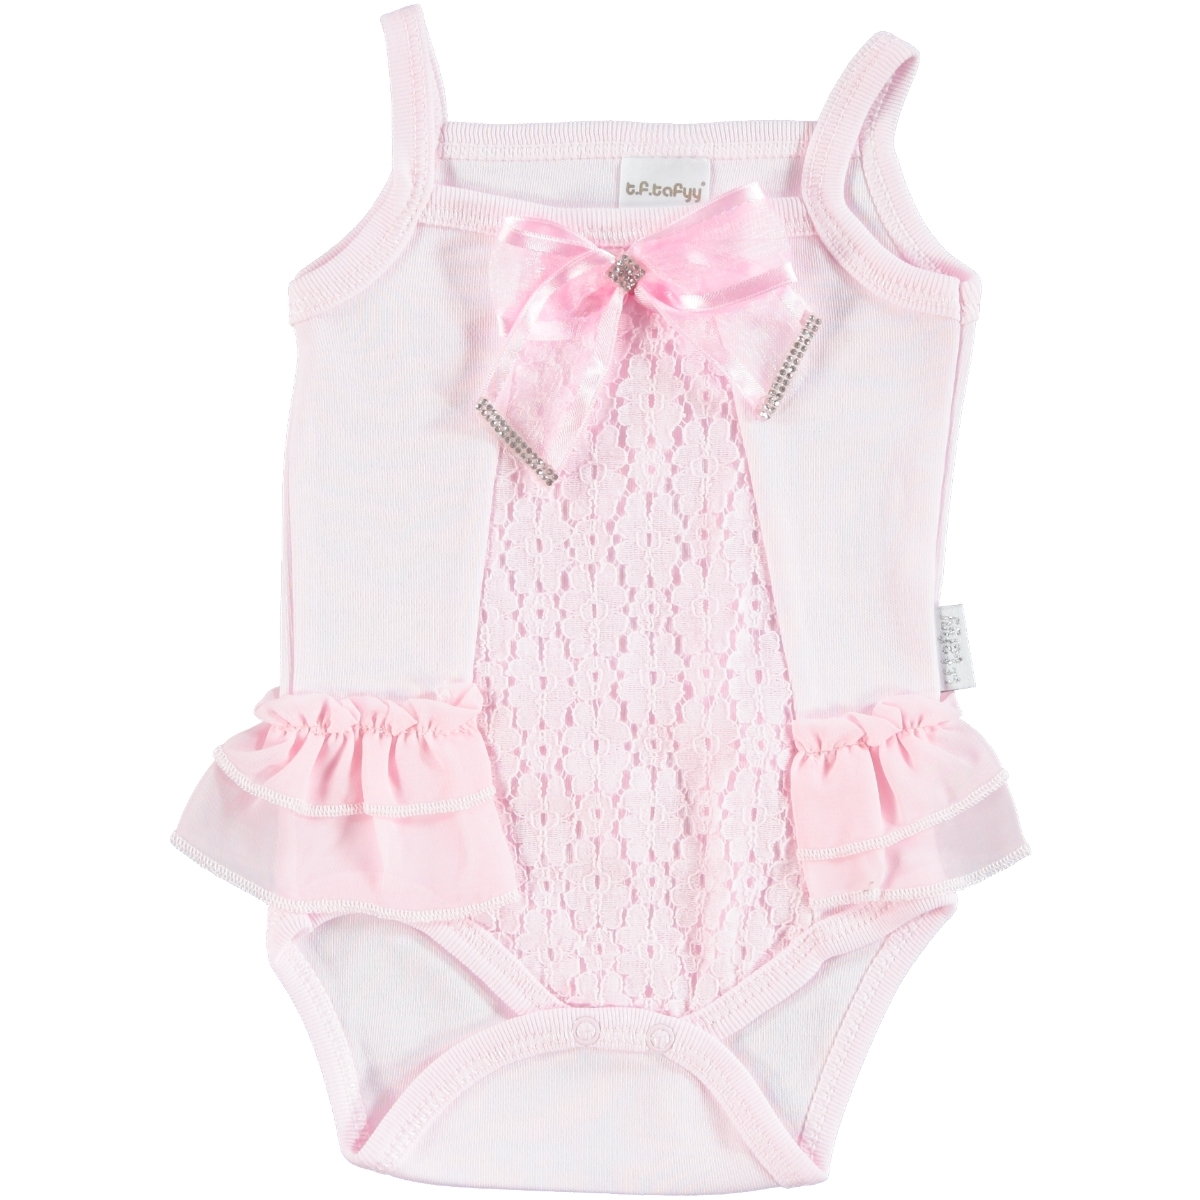 T.F.Taffy Baby Girl Bodysuit With Snaps Taffy Pink, 3-9 Months